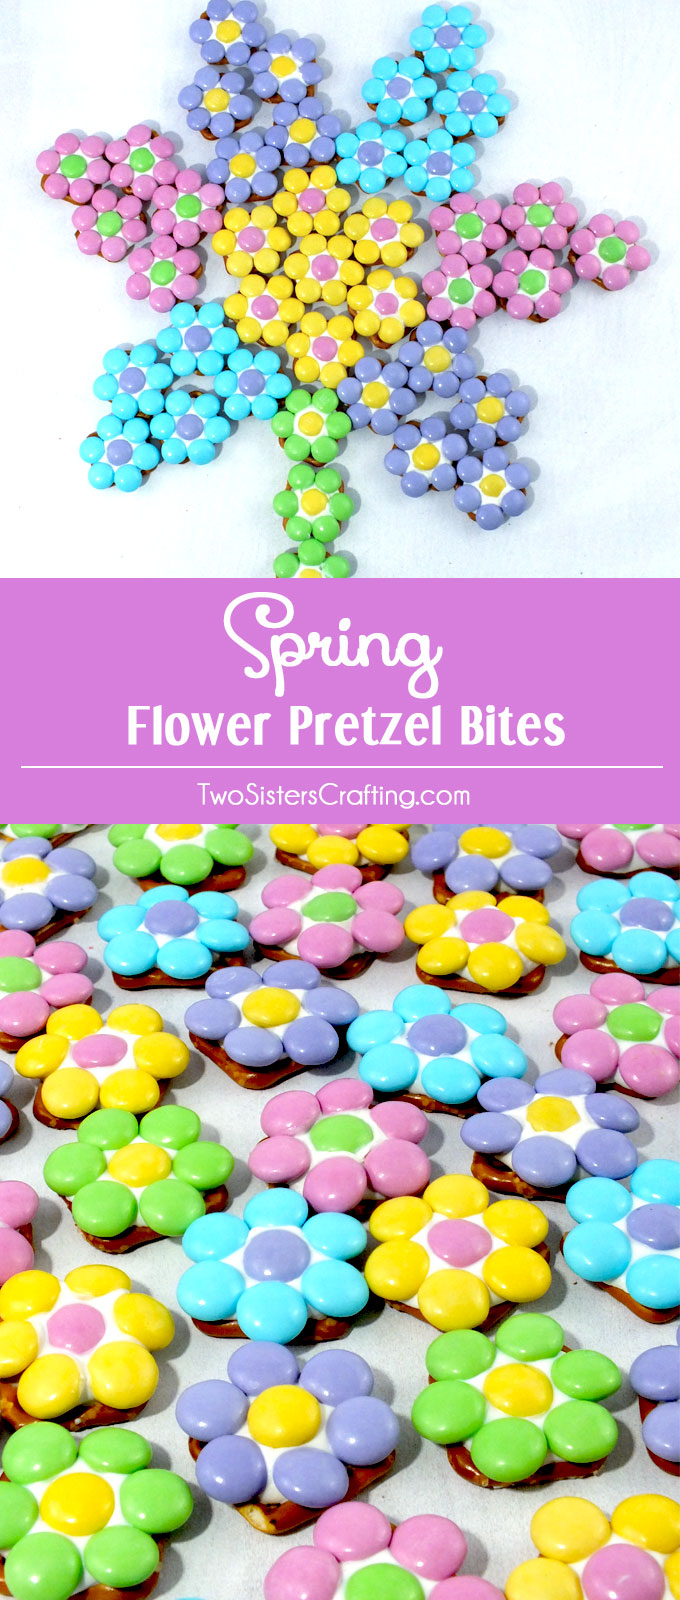 Our Spring Flower Pretzel Bites are so pretty and so easy to make. Sweet, salty, crunchy and delicious - what a great Easter Dessert.  Your guest will beg for more of these colorful Easter Treats. They would also be a great homemade Mother's Day Dessert and Spring treat. Follow us for more fun Easter Food Ideas.